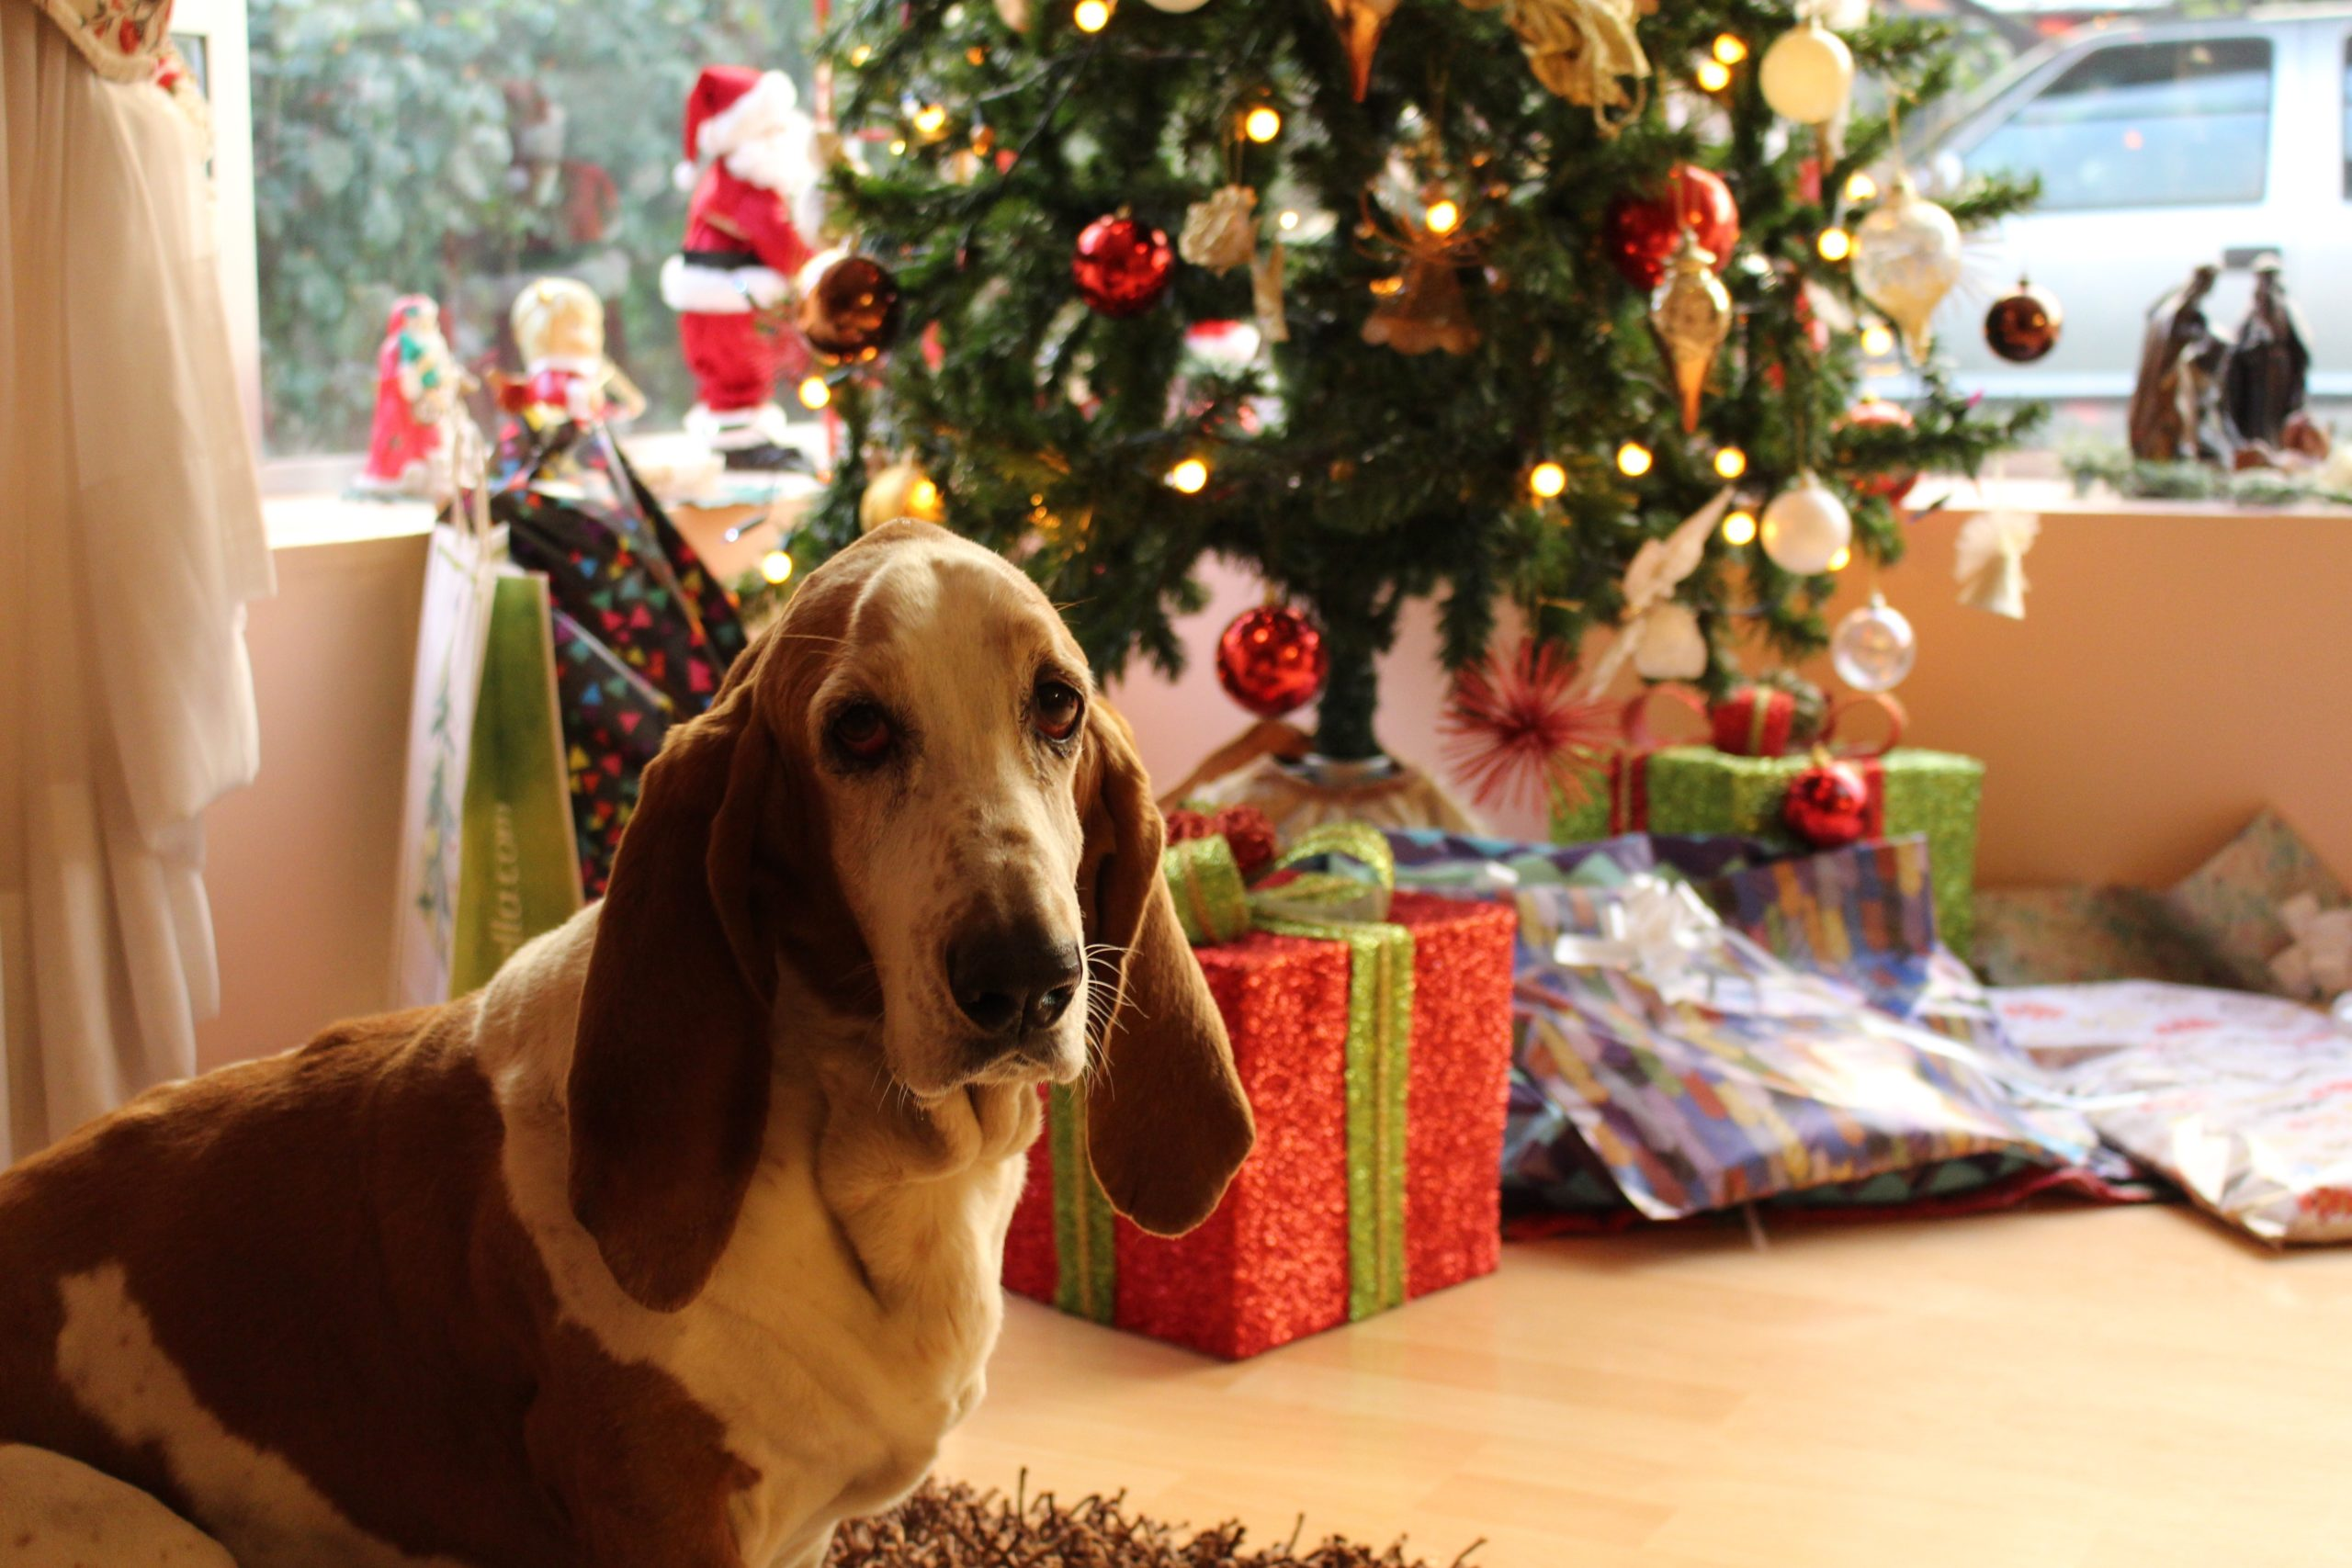 Pet Gifts, Decorations, and Plants: How To Plan A Pet-Safe Christmas